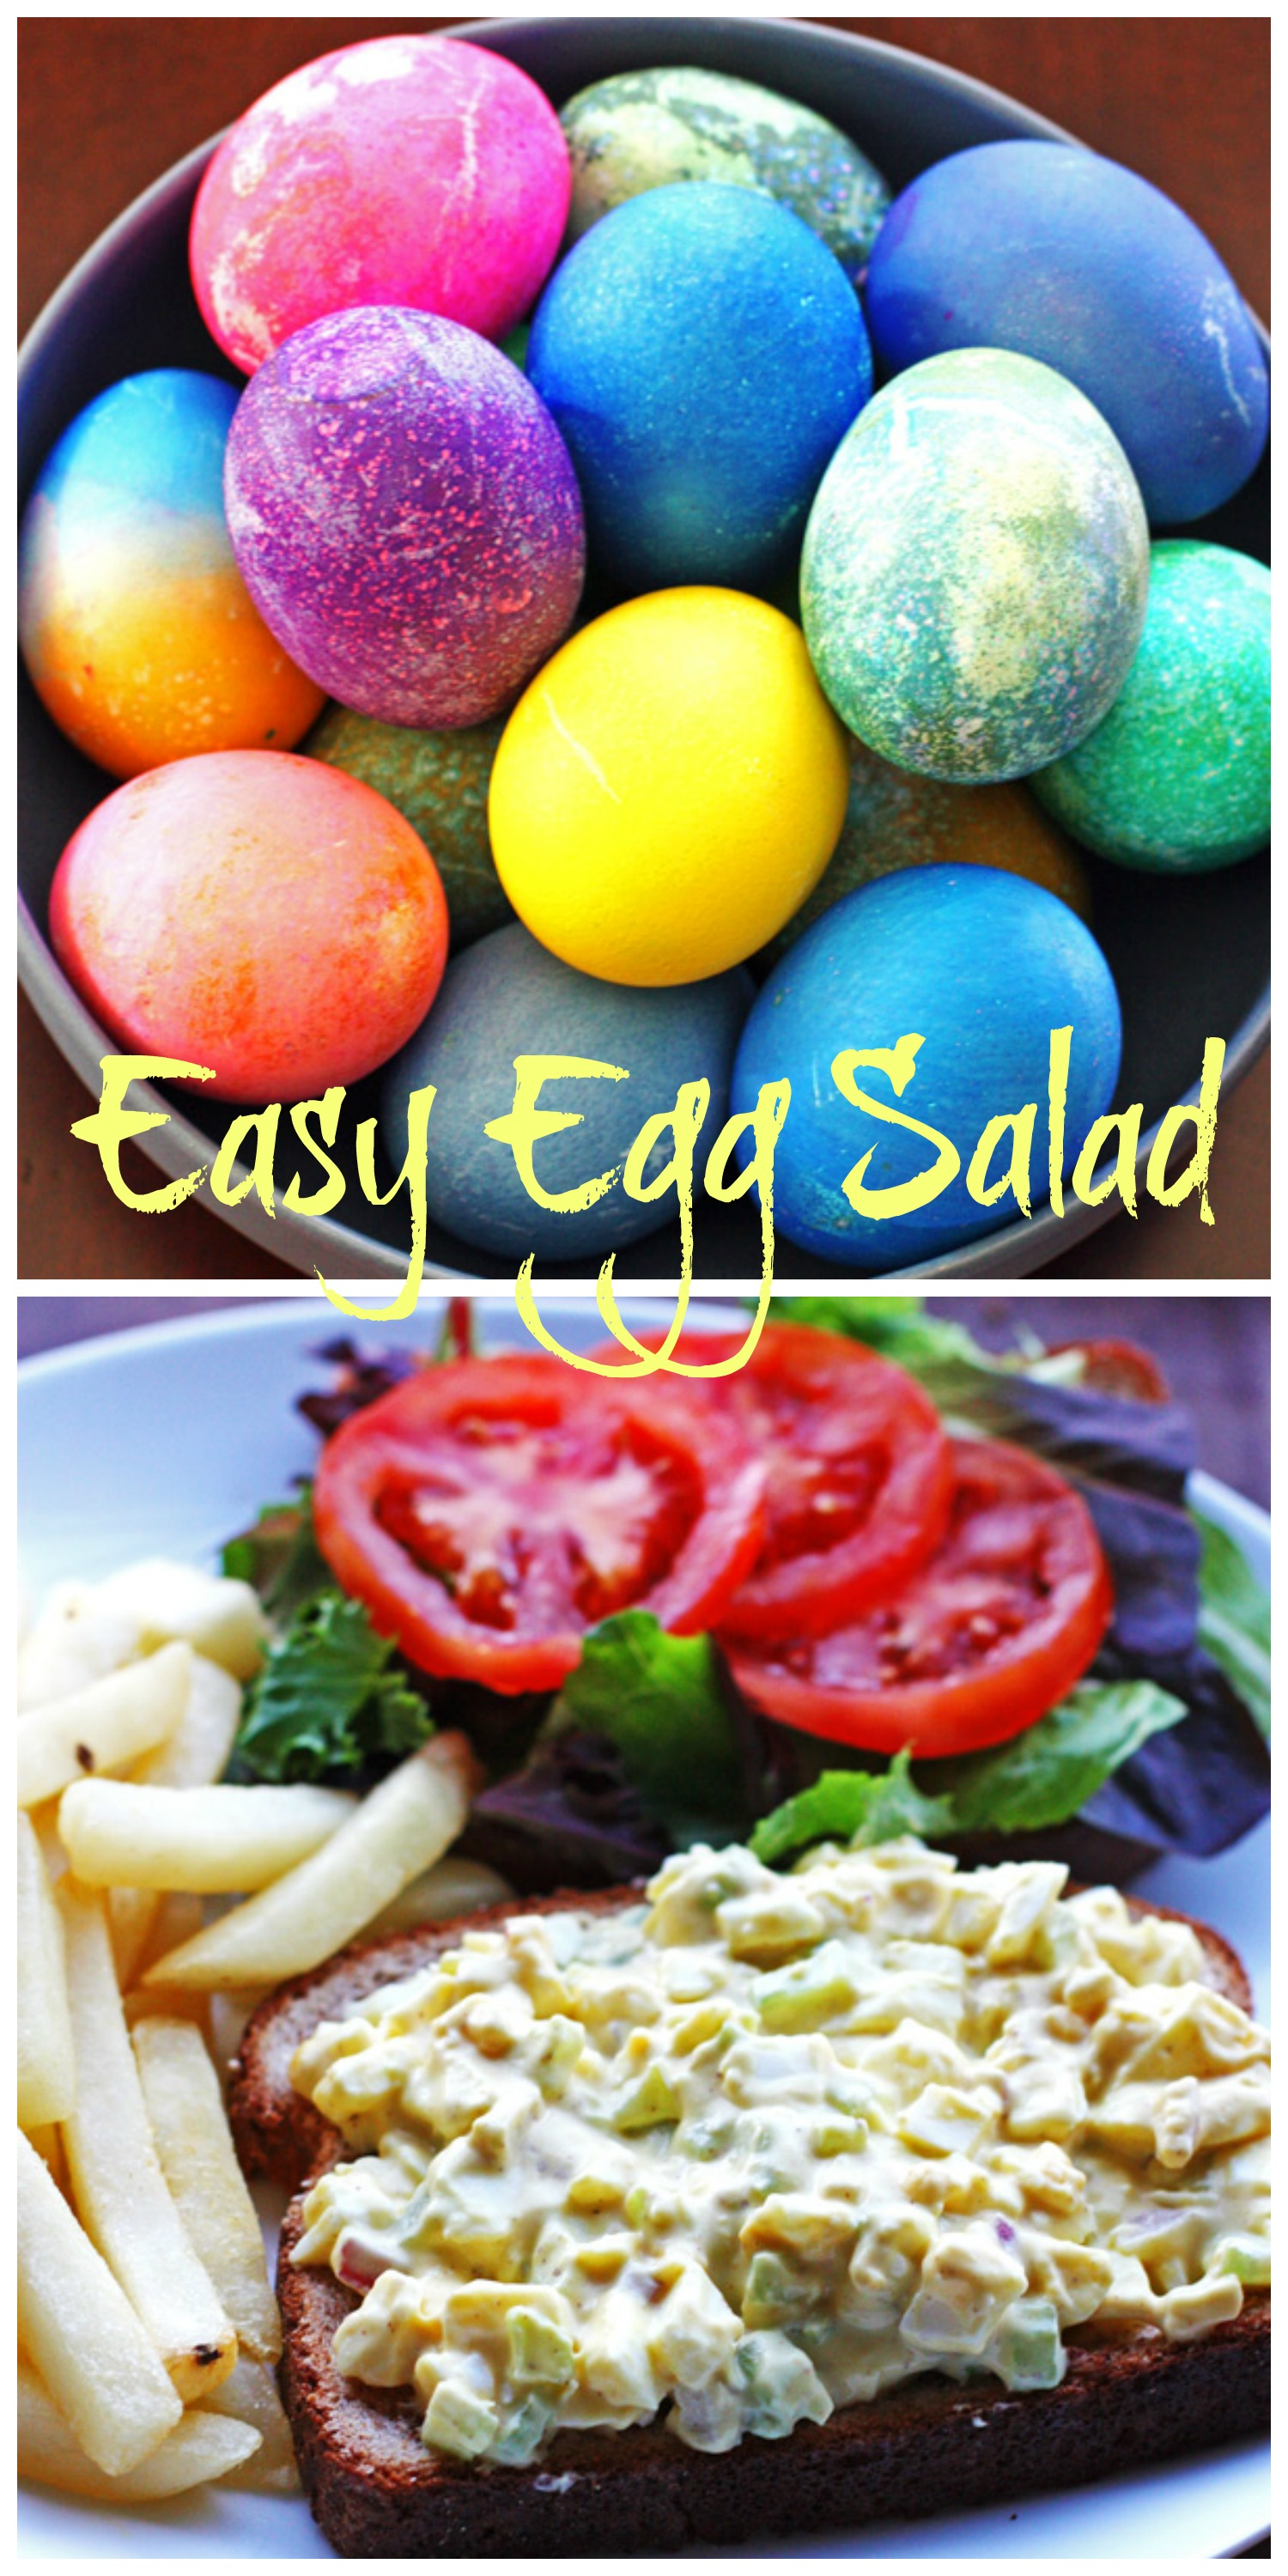 Easy Egg Salad pin